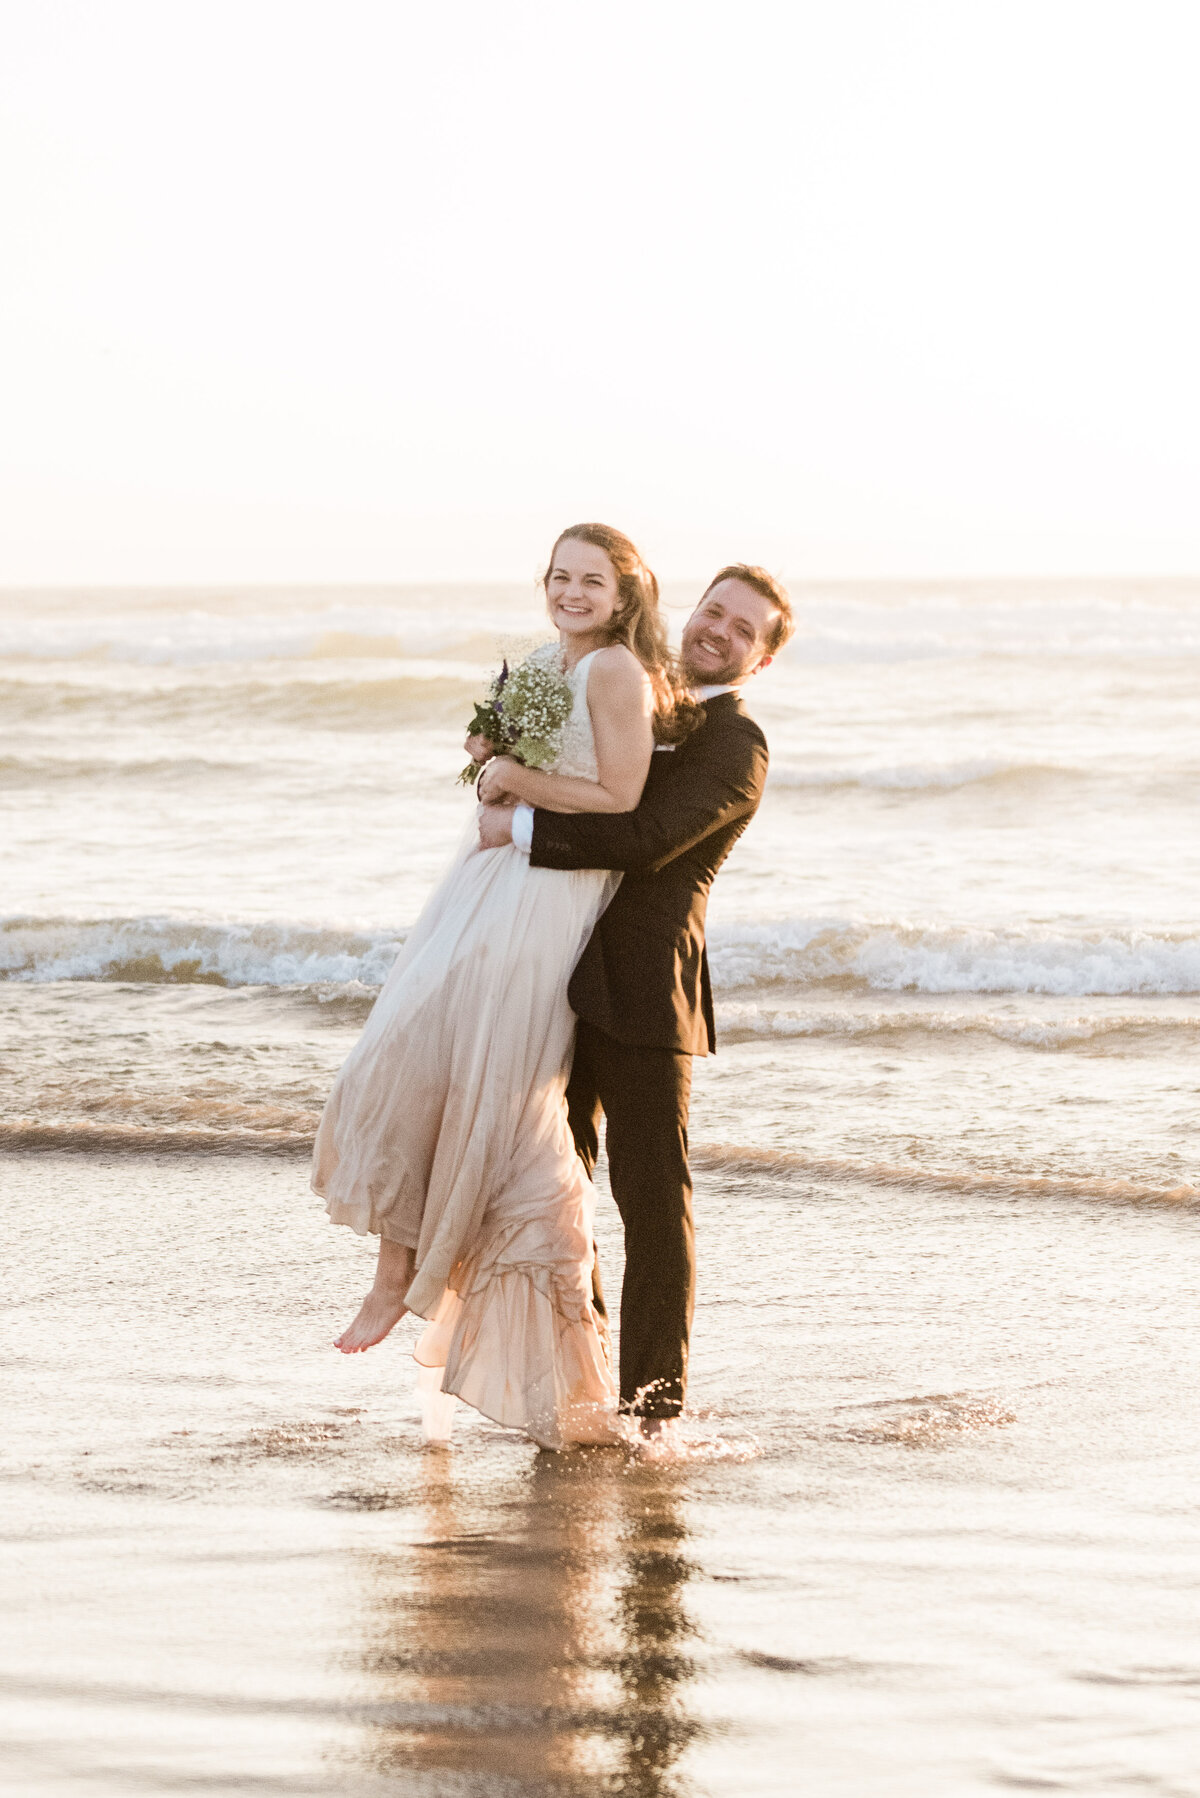 Cannon-Beach-Elopement-Photographer-56